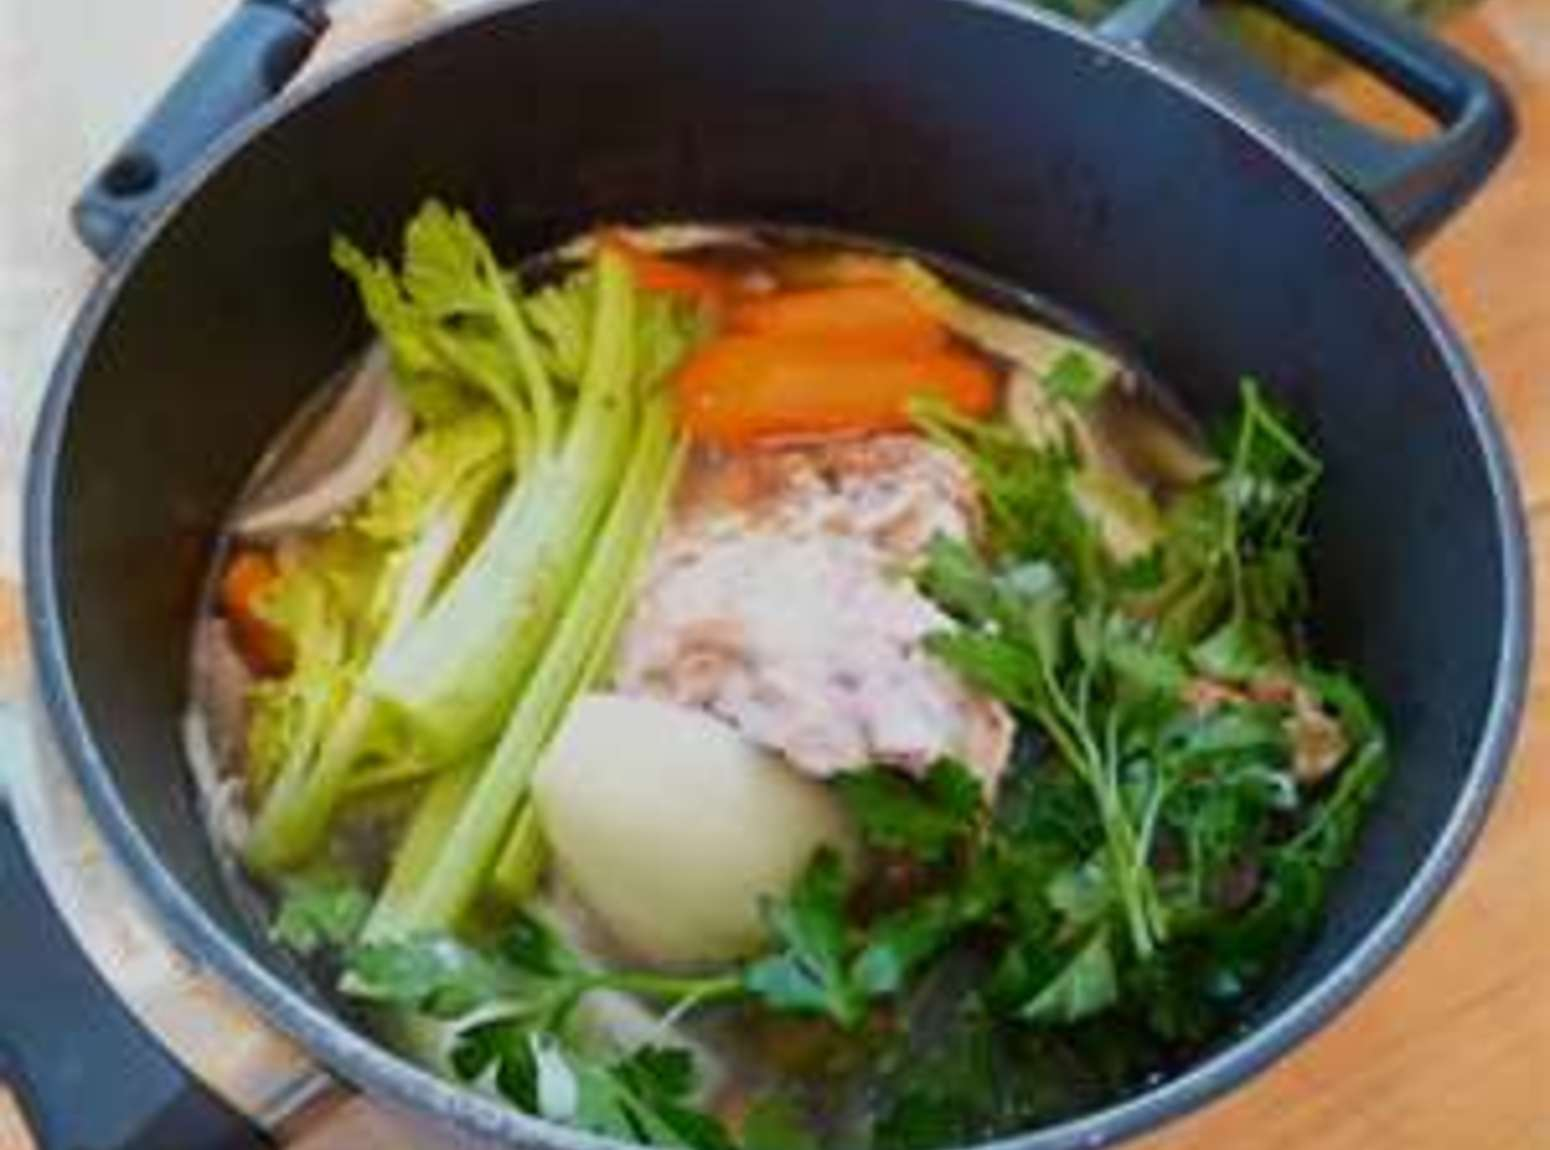 Stock VS. Broth Recipe